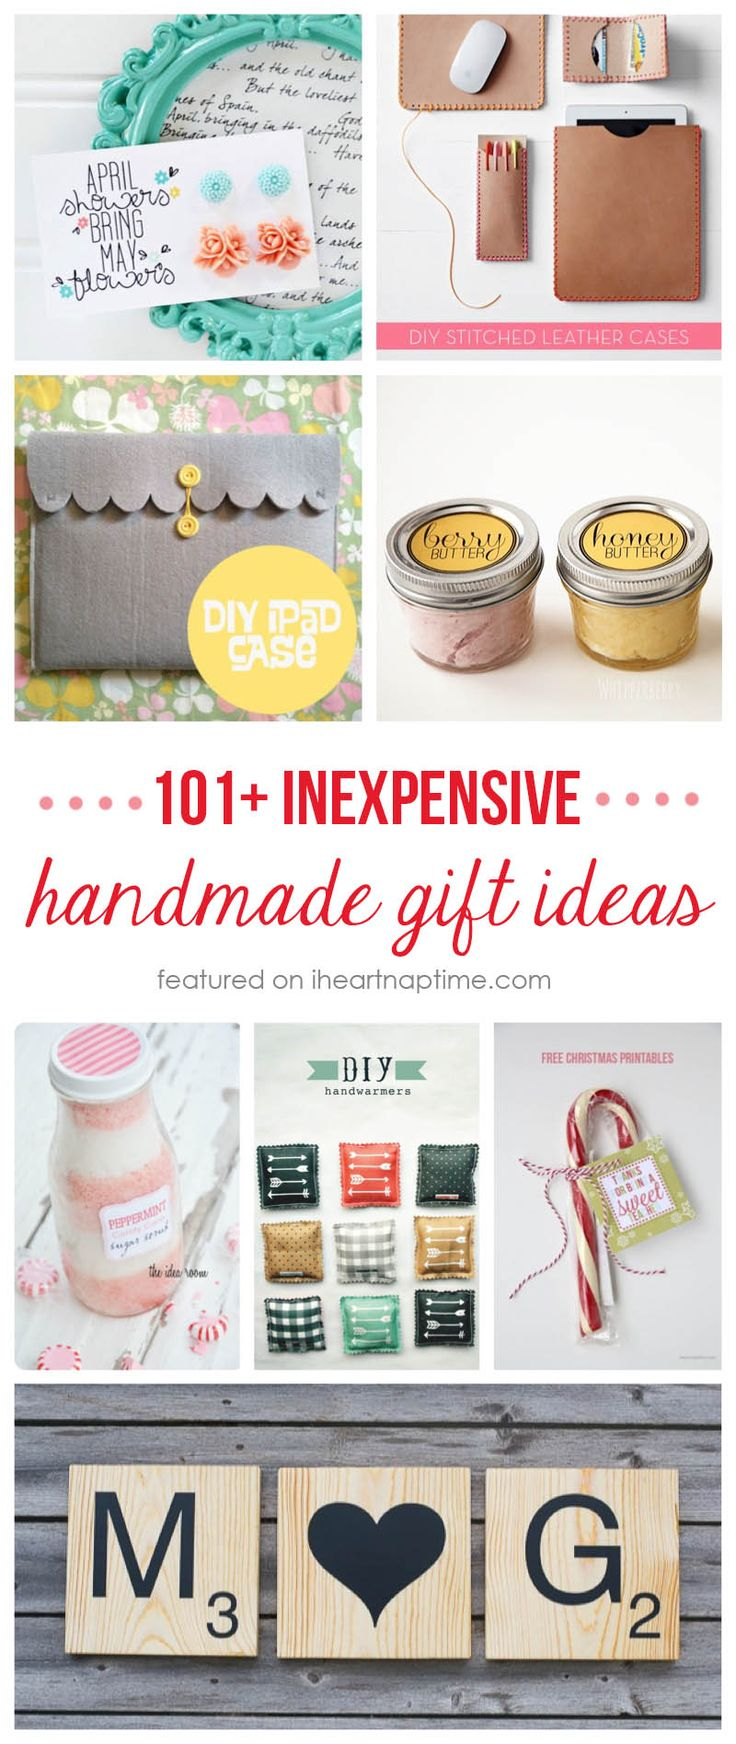 1000 images about family newsletter ideas on pinterest for 101 crazy crafting ideas